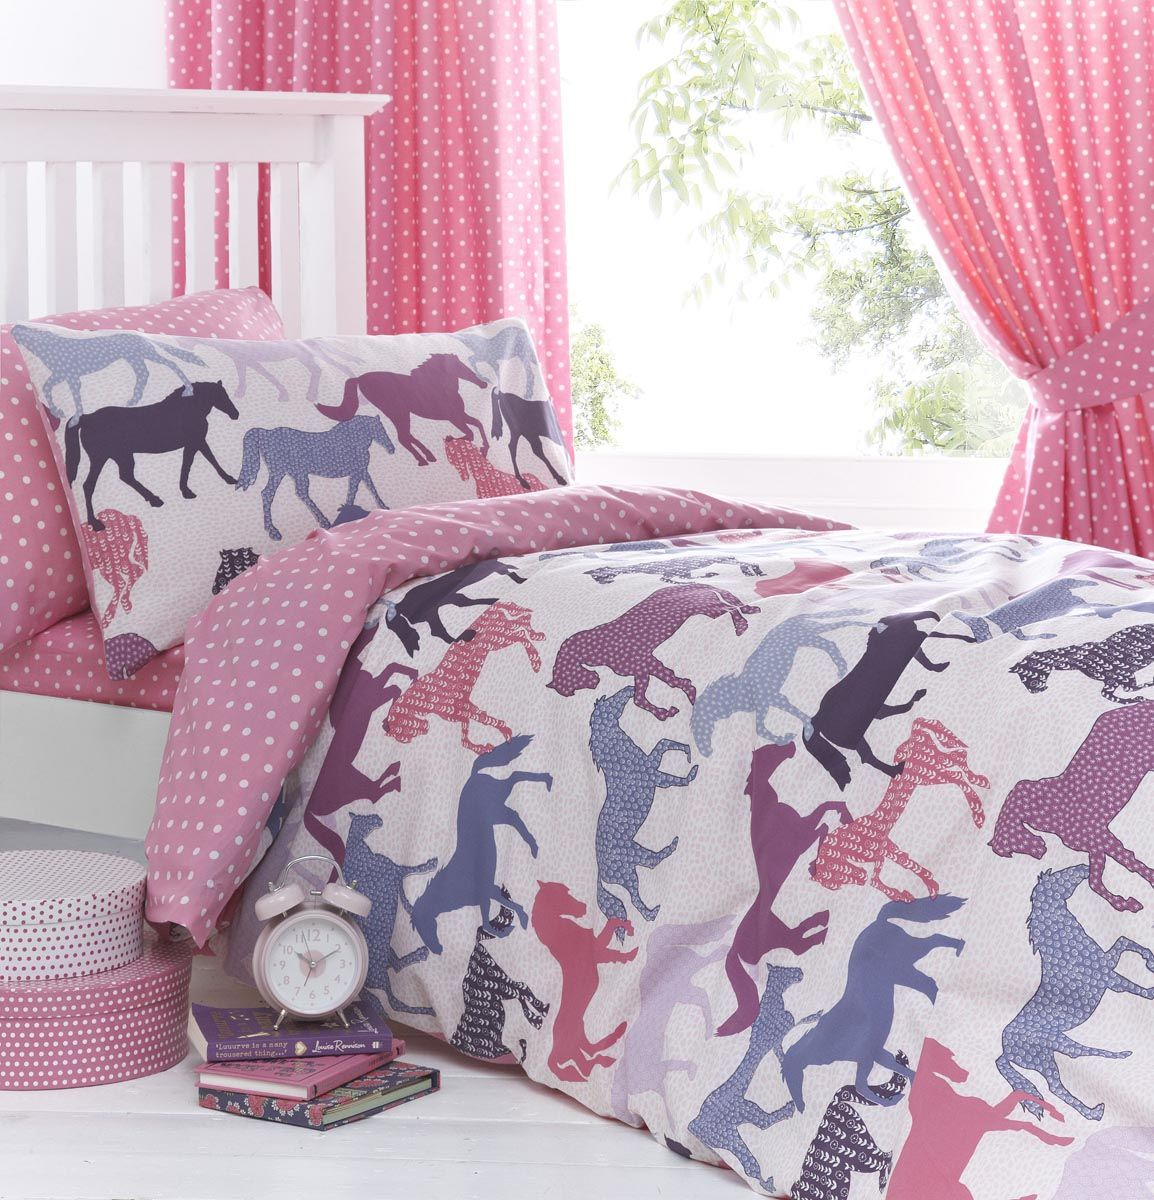 horse bedding for teens details about gallop pink girls horse bedding duvet cover set sheet - Horse Bedding